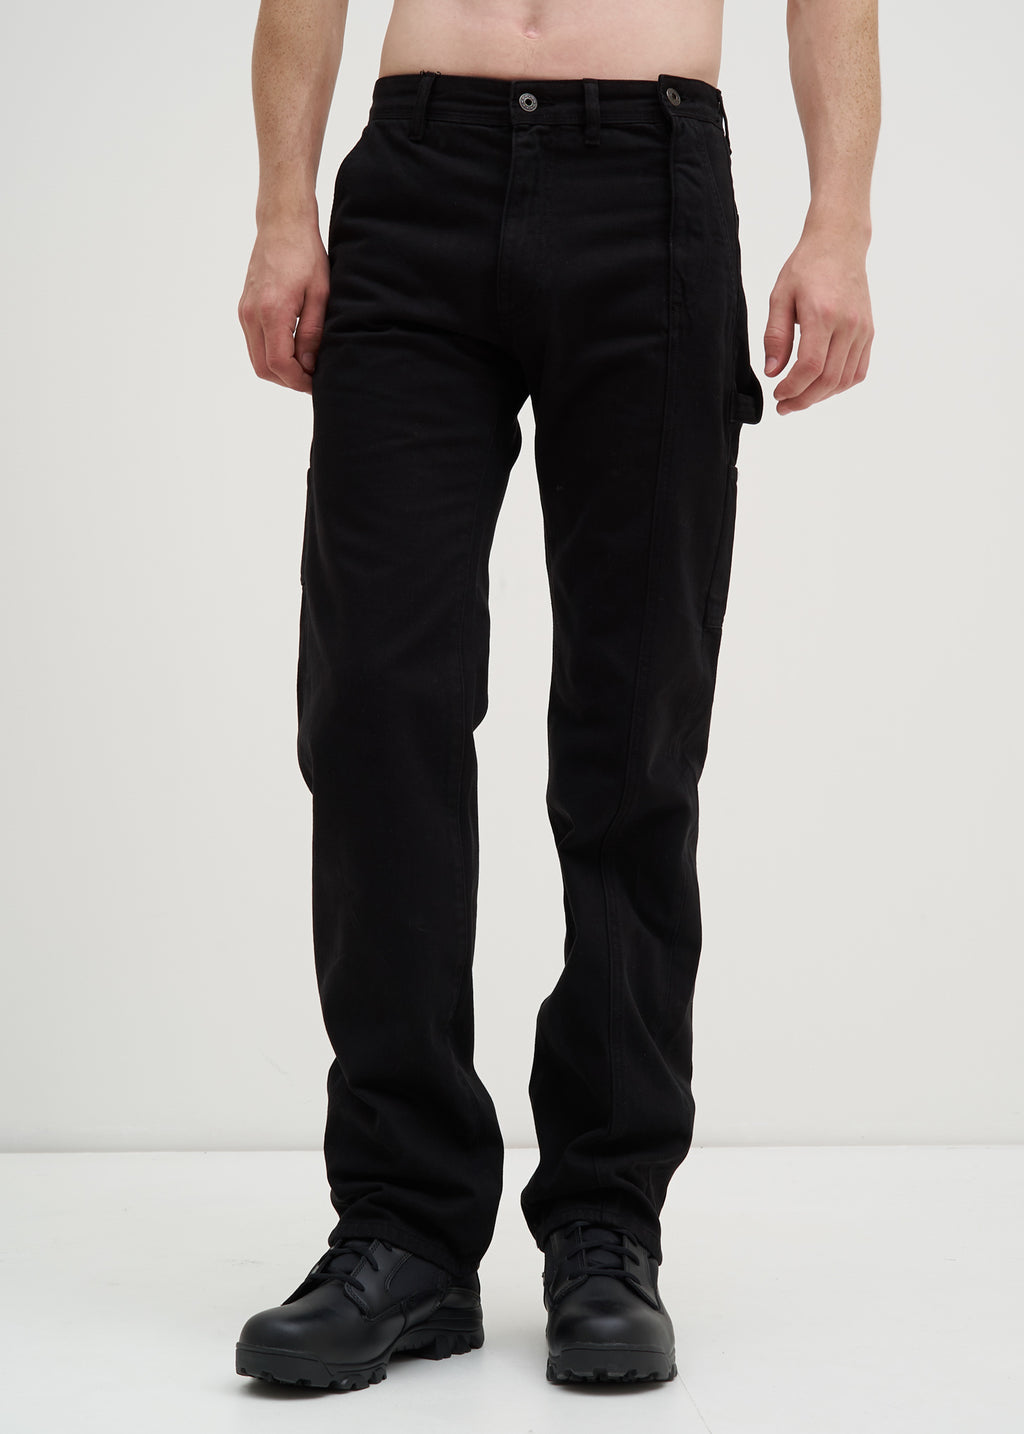 Black Side Zip Trousers